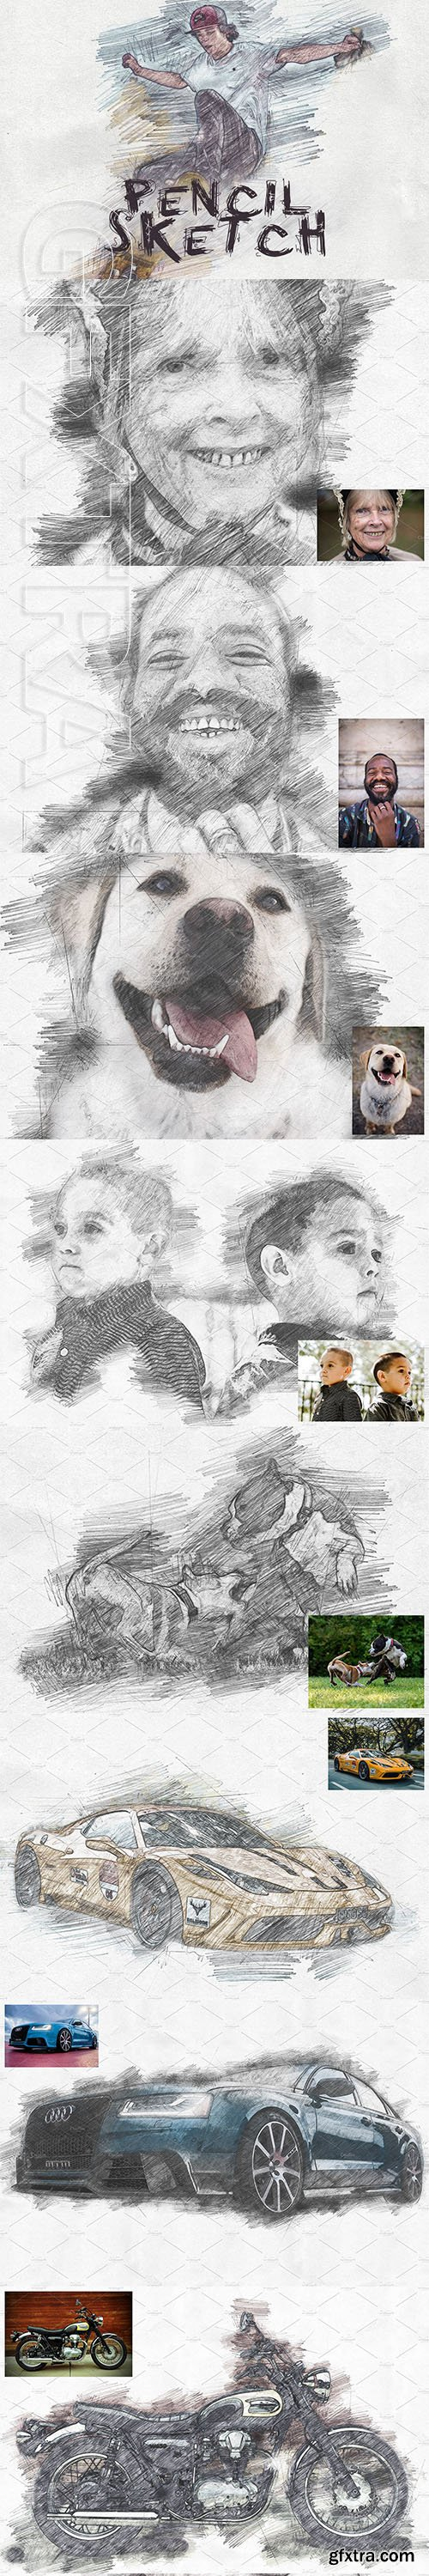 CreativeMarket - Pencil Sketch Photoshop Action 3131294